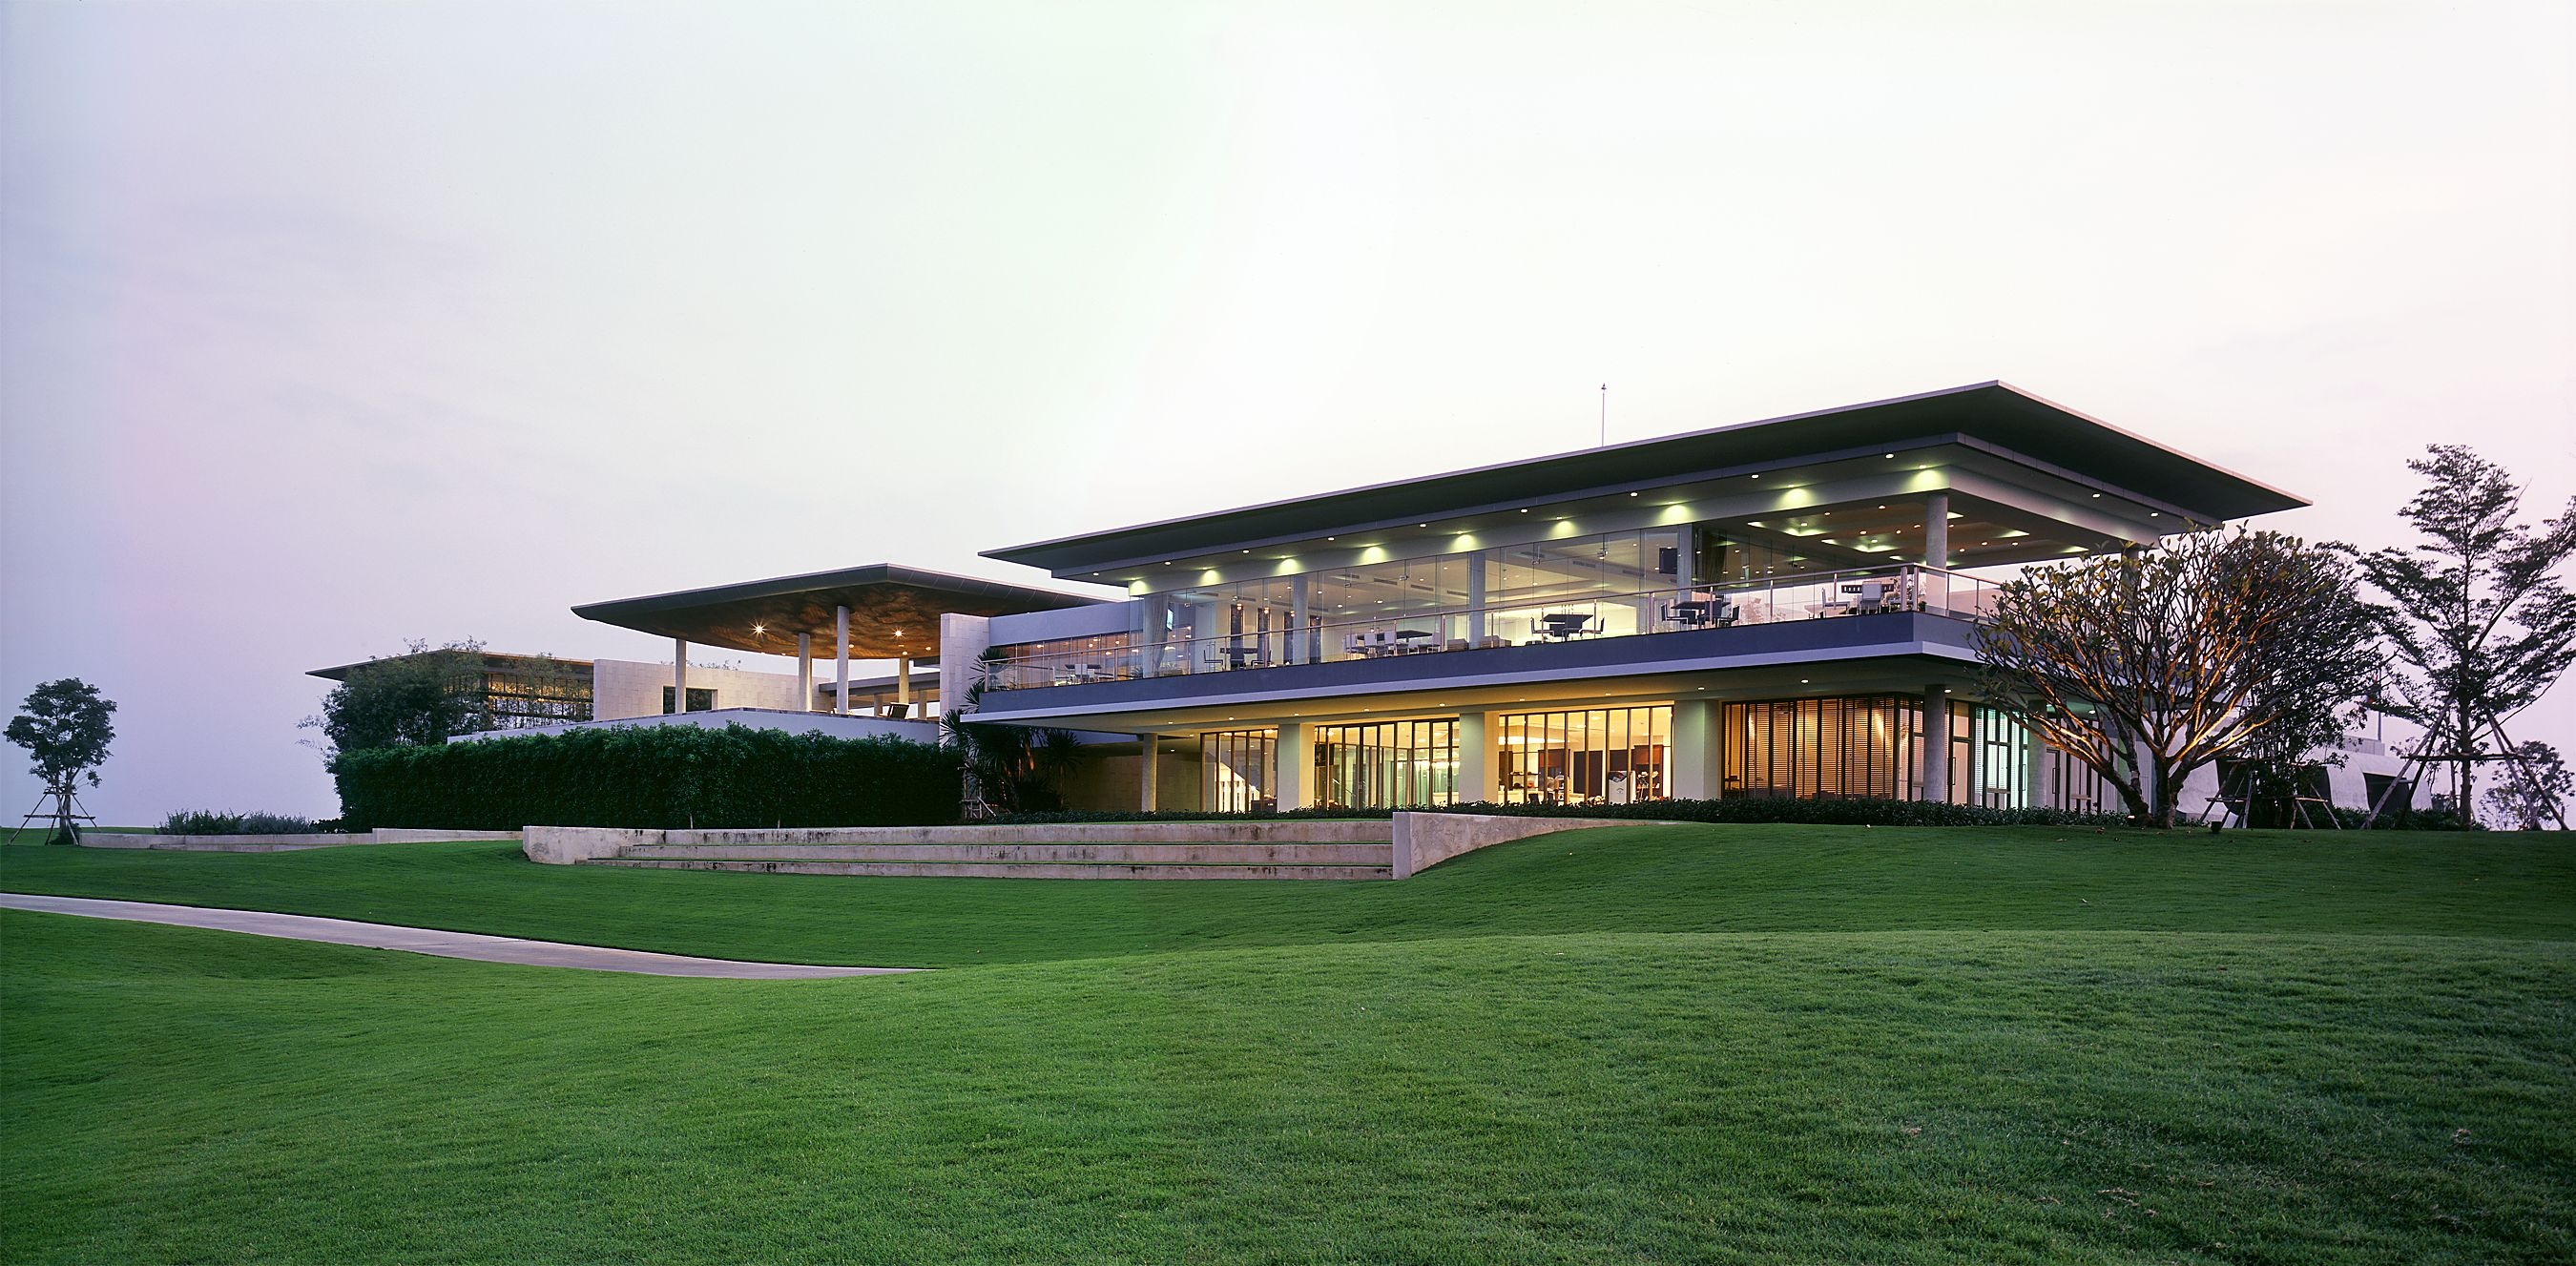 The clubhouse of Ayodhya golf course is designed with the reminiscence of its location, Ayuthaya, Thailand's old capital city. Source Image: http://www.bangkokarchitect.com/project/ayodhya-clubhouse/